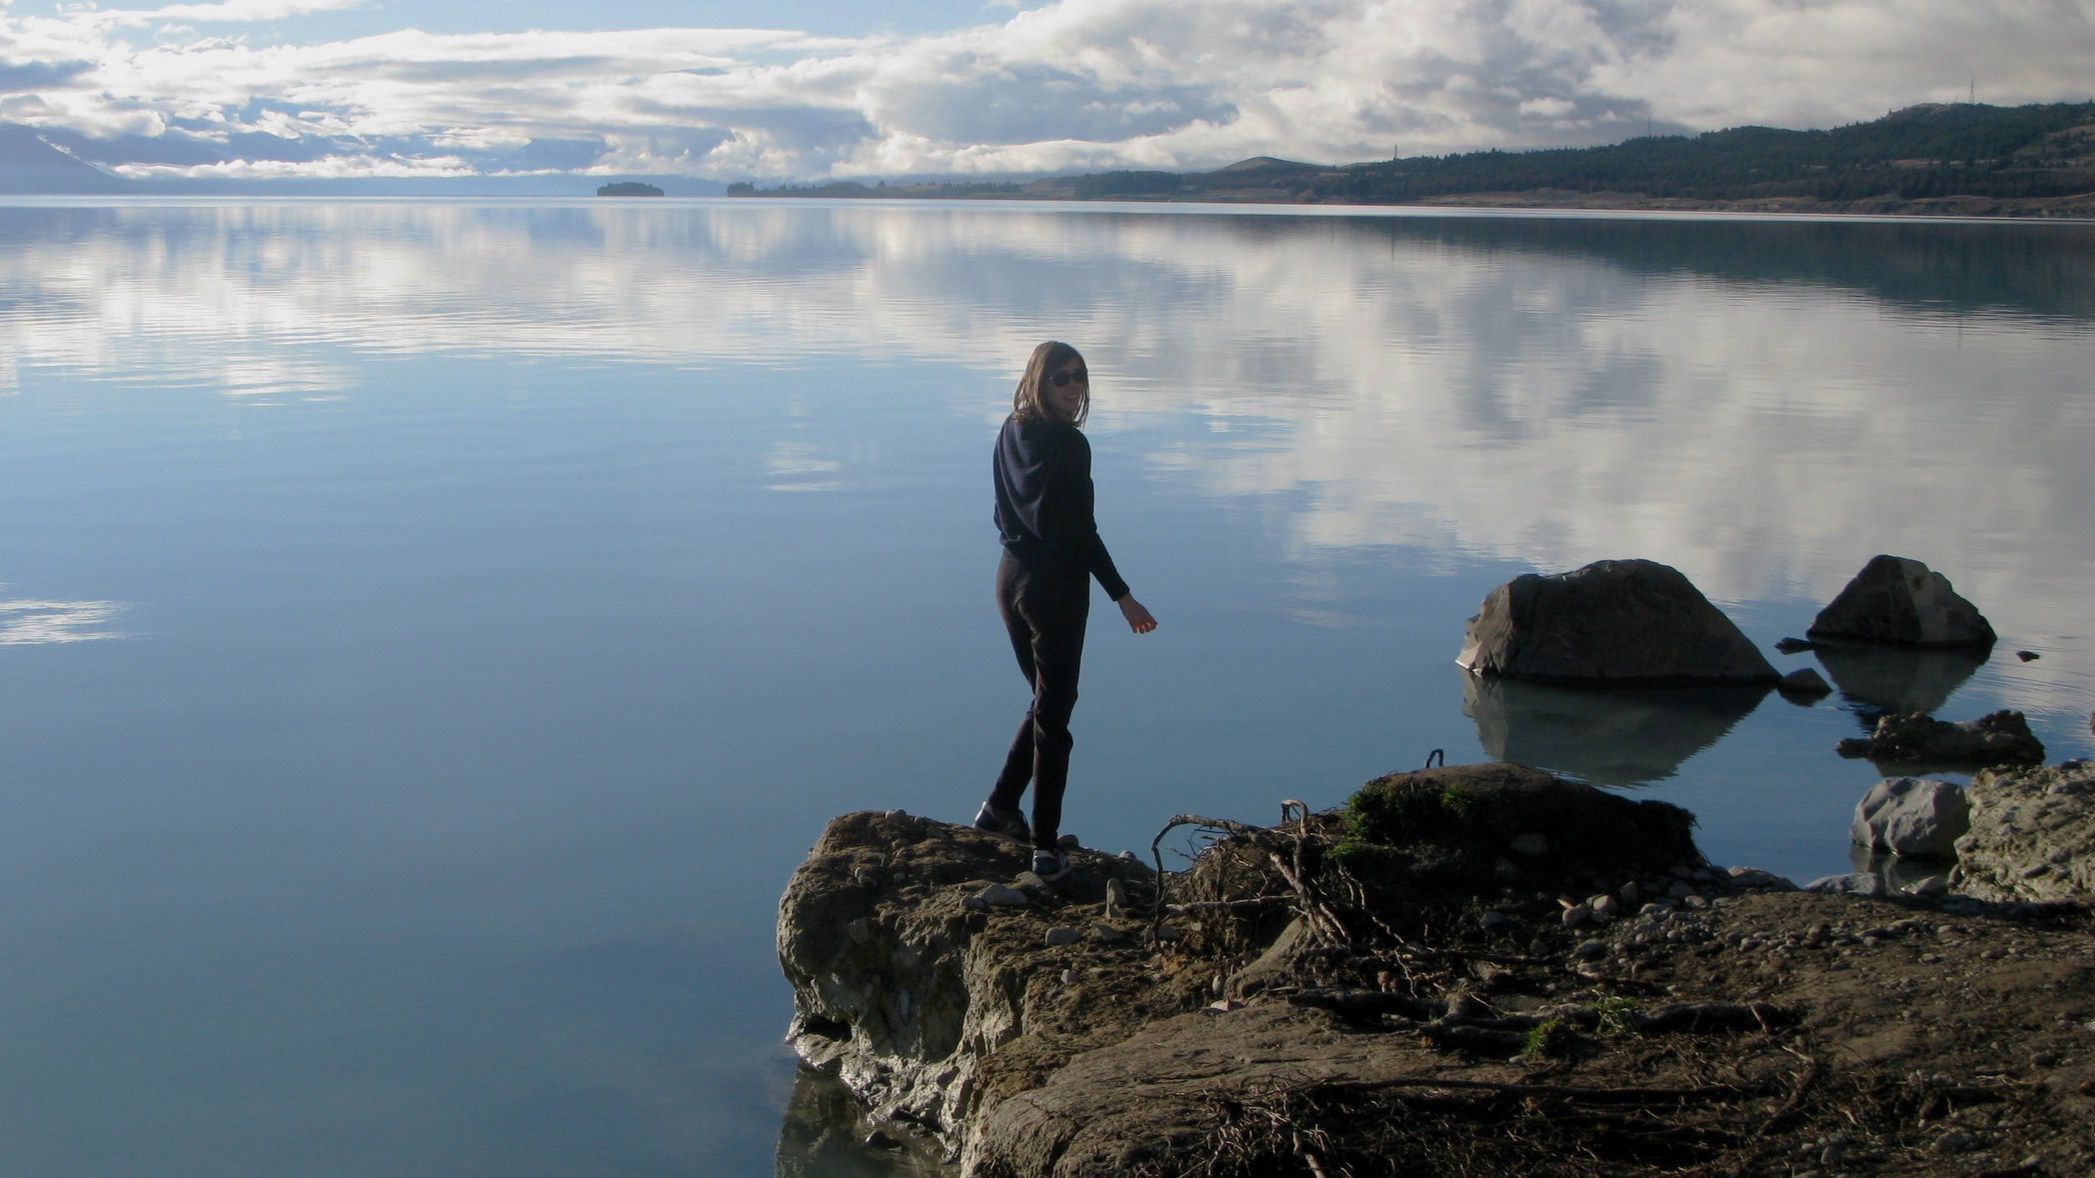 Looking out on Lake Pukaki, on my trip around the South Island